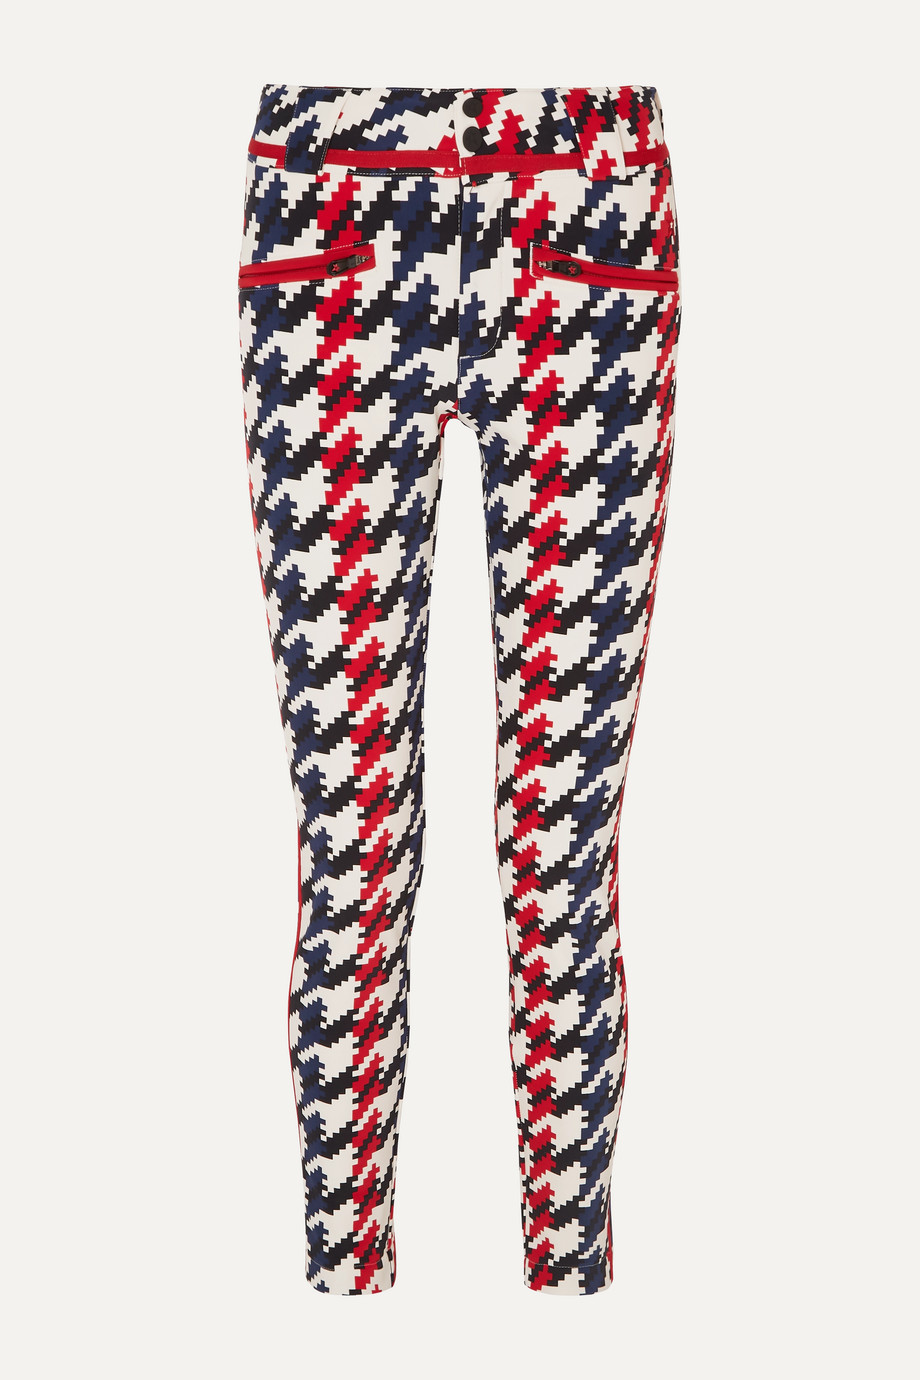 Perfect Moment Aurora II houndstooth slim-leg ski pants